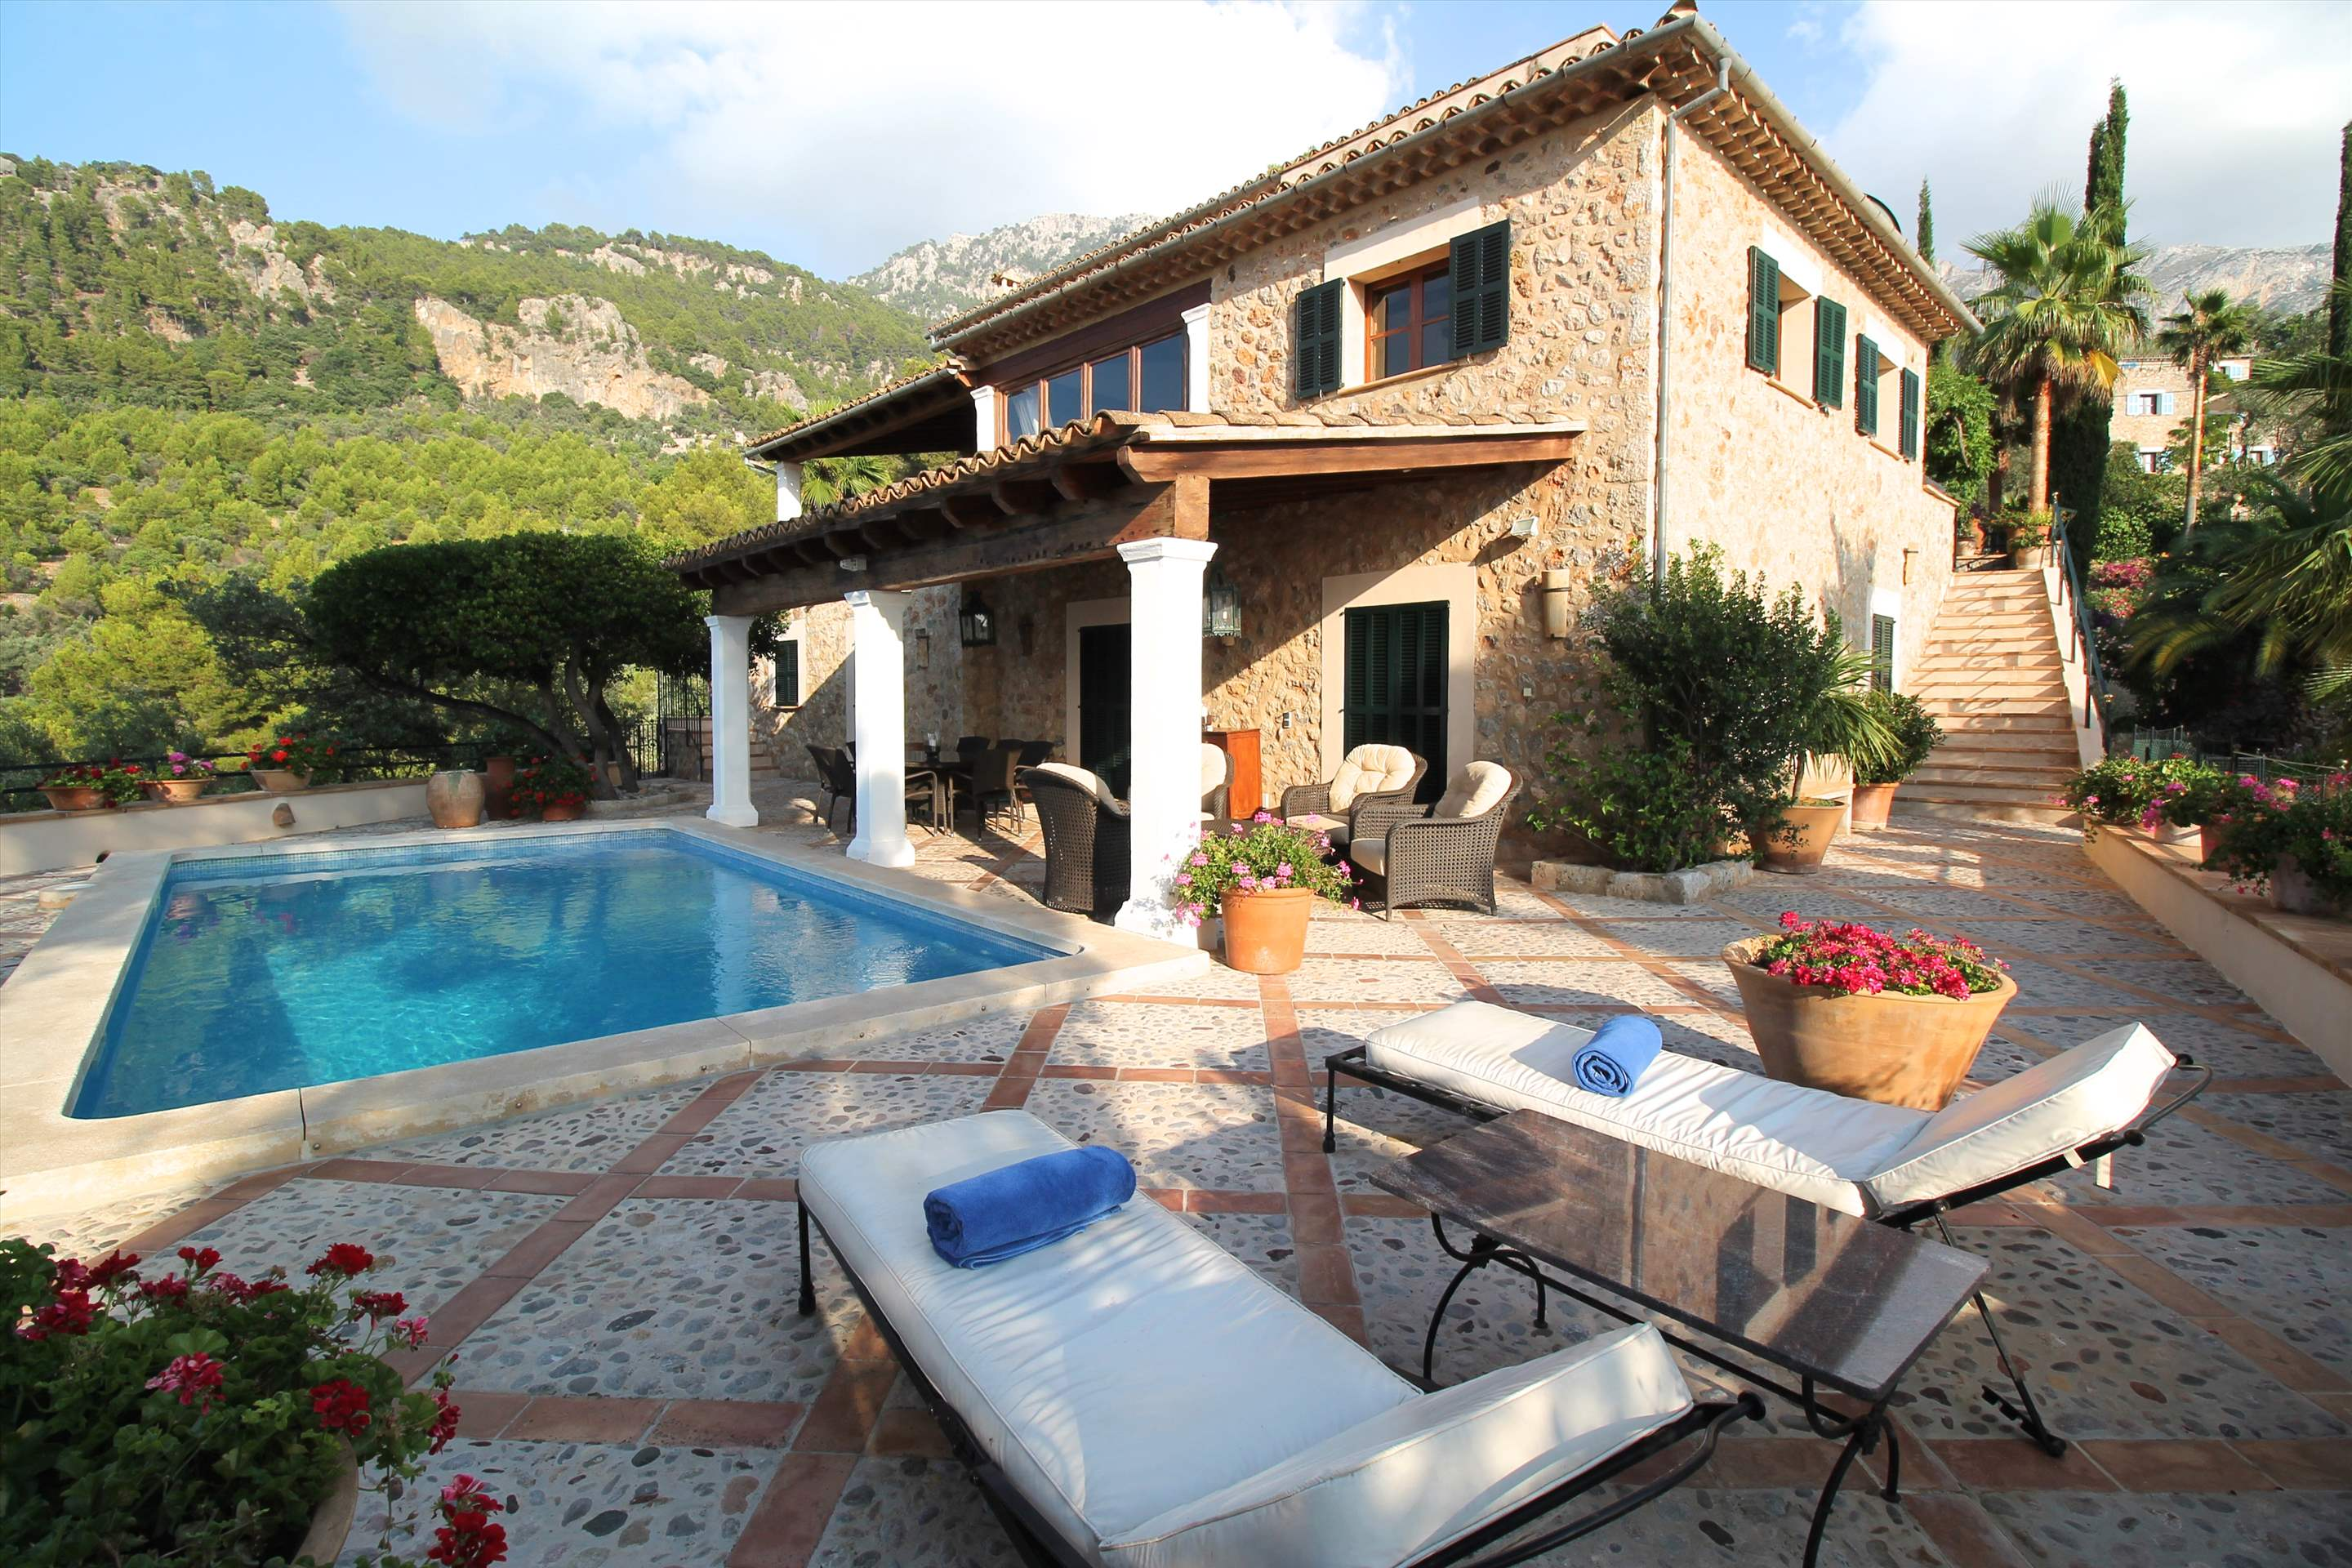 Can Winando, 5 Bedroom Rental, 5 bedroom villa in Soller & Deia, Majorca Photo #1